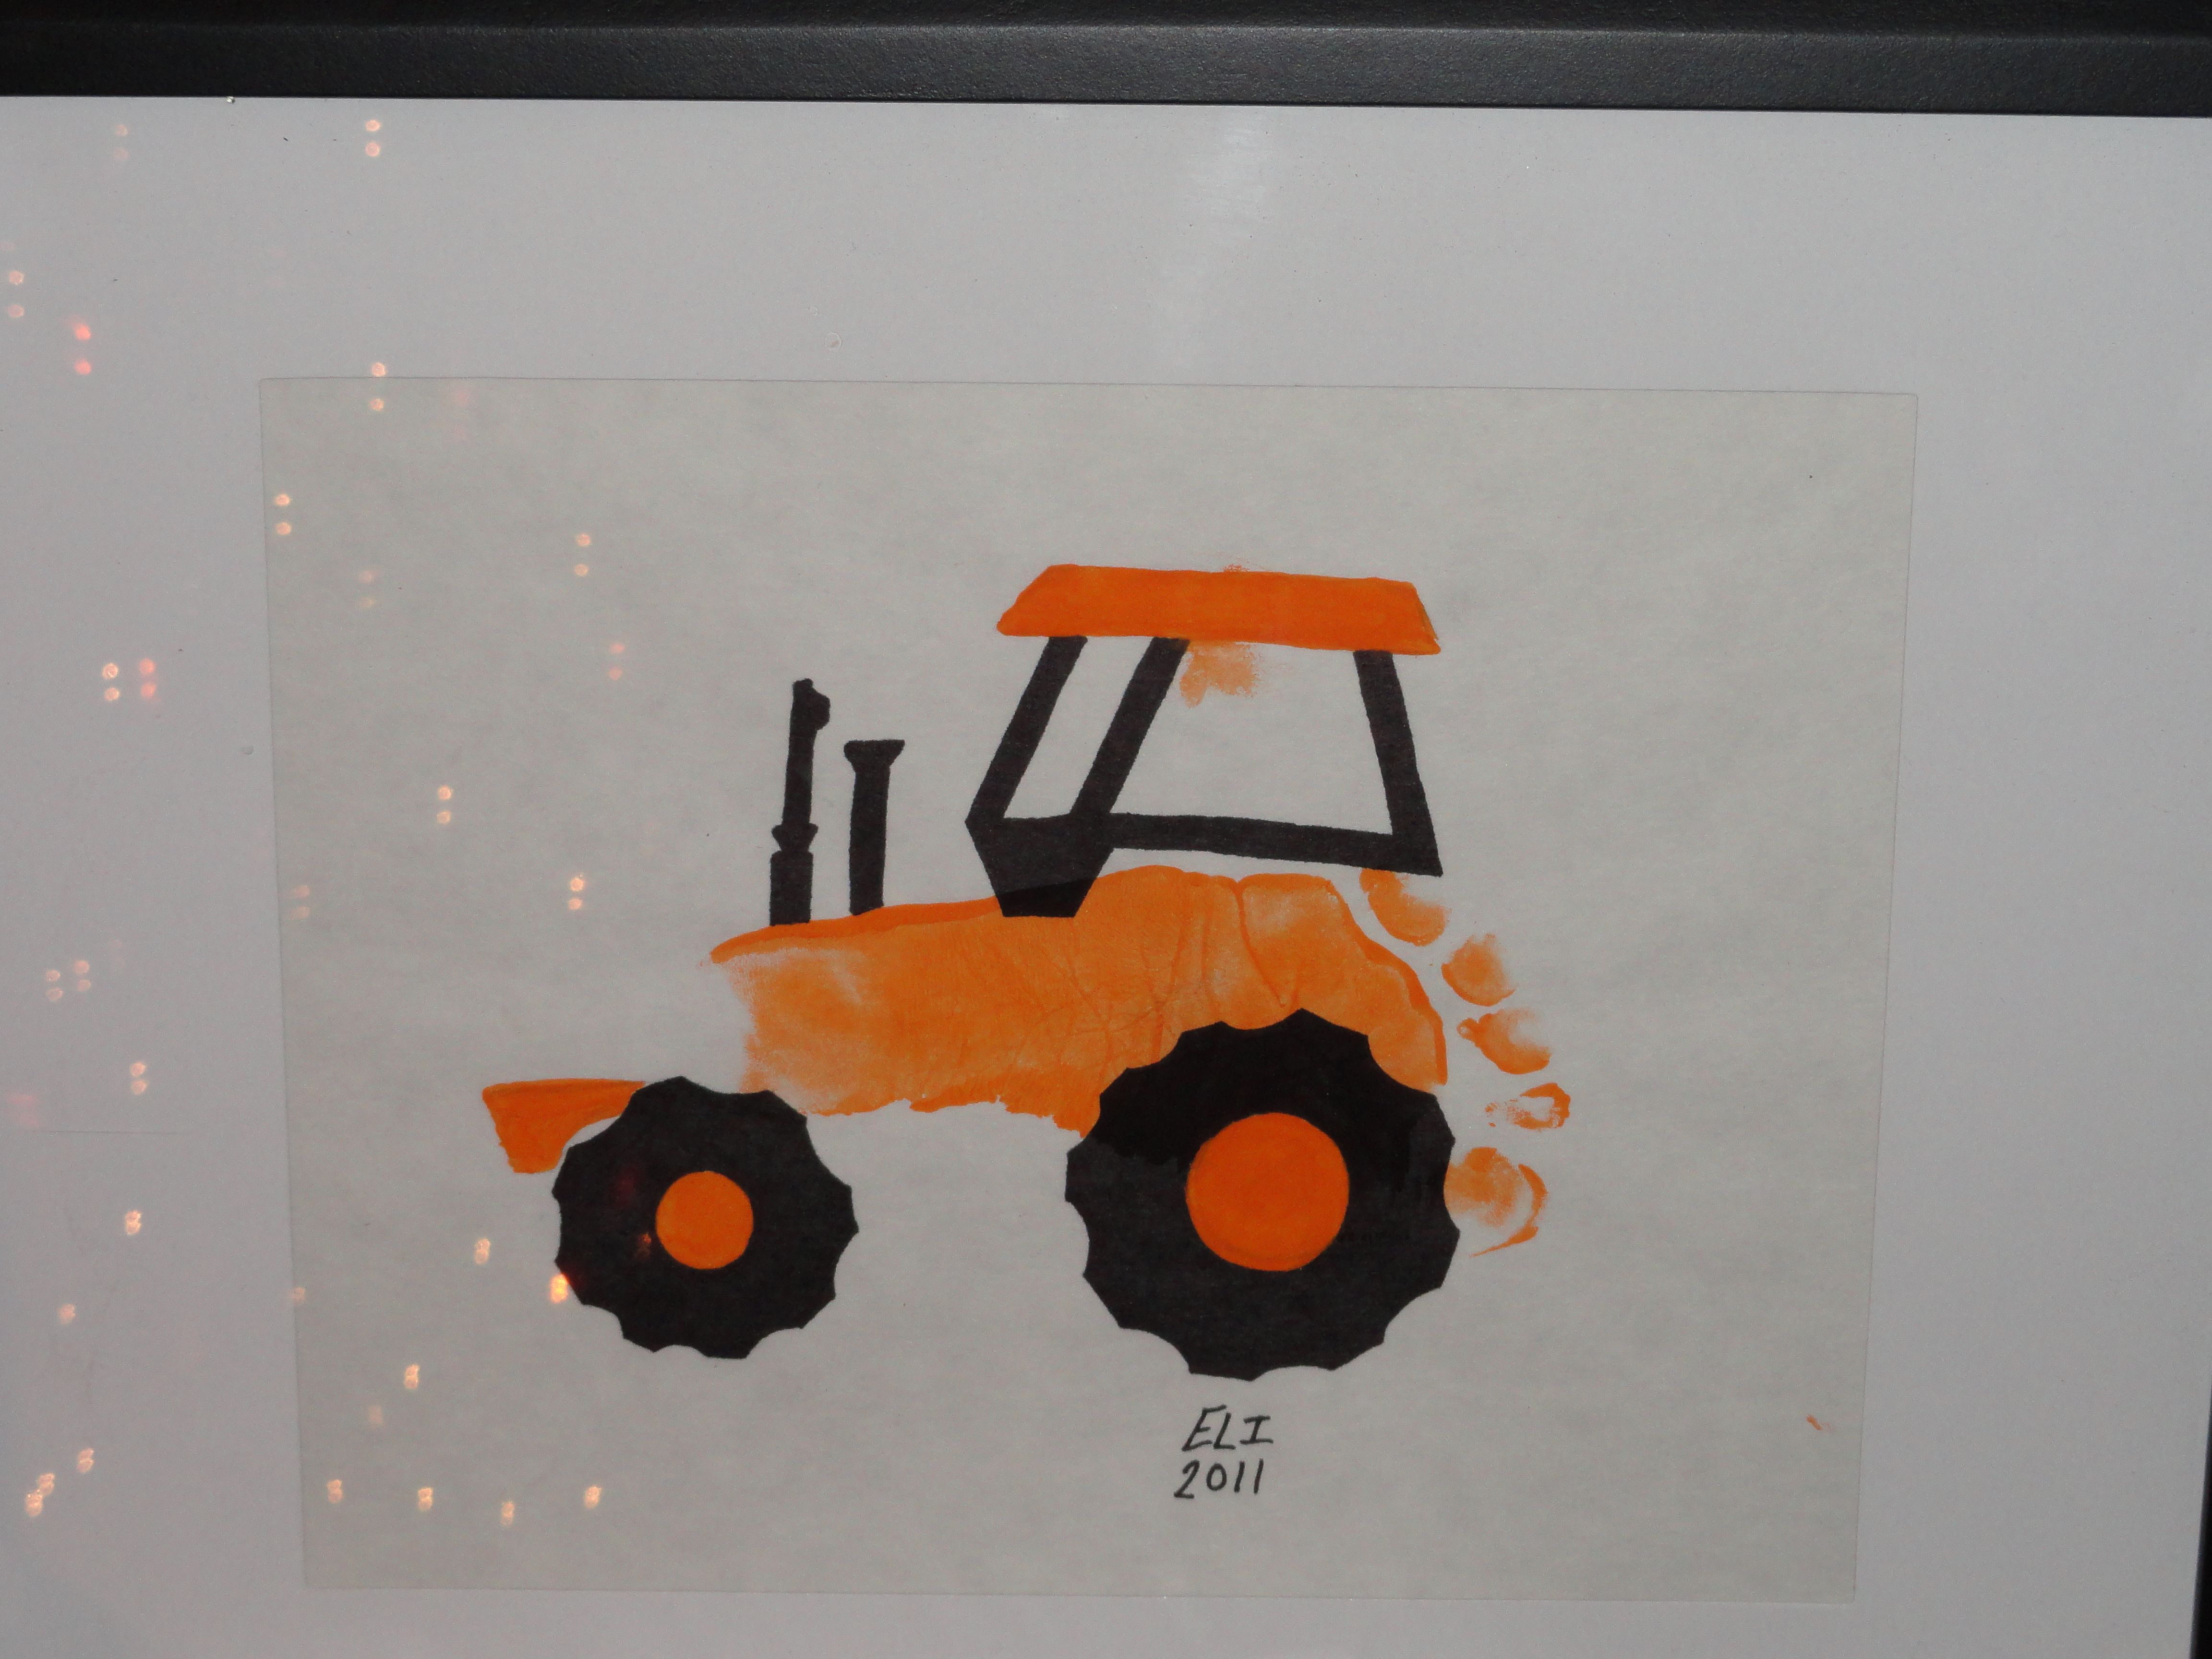 Allis Chalmers (Elis Hand Print) Tractor I Made For Christmas